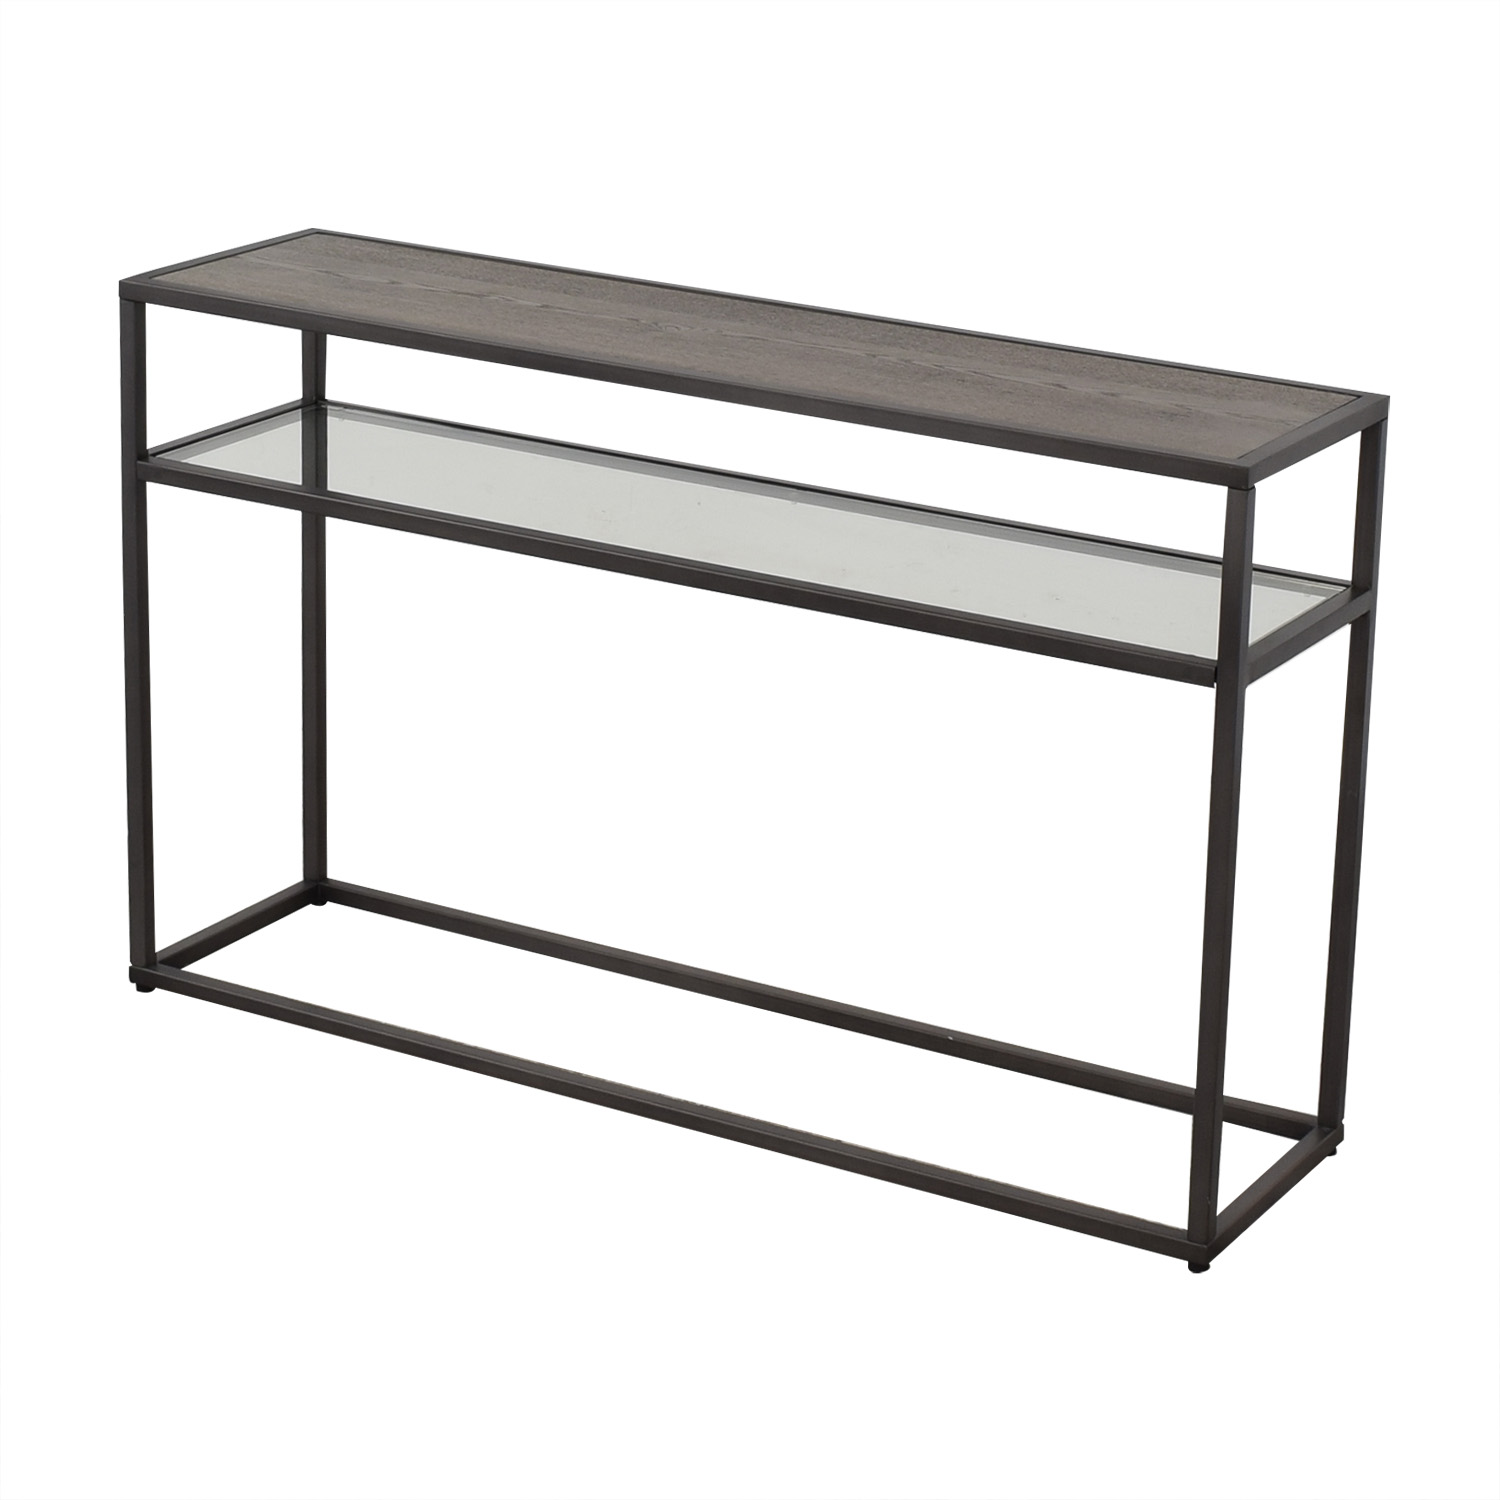 Crate & Barrel Crate & Barrel Switch Console Table nyc